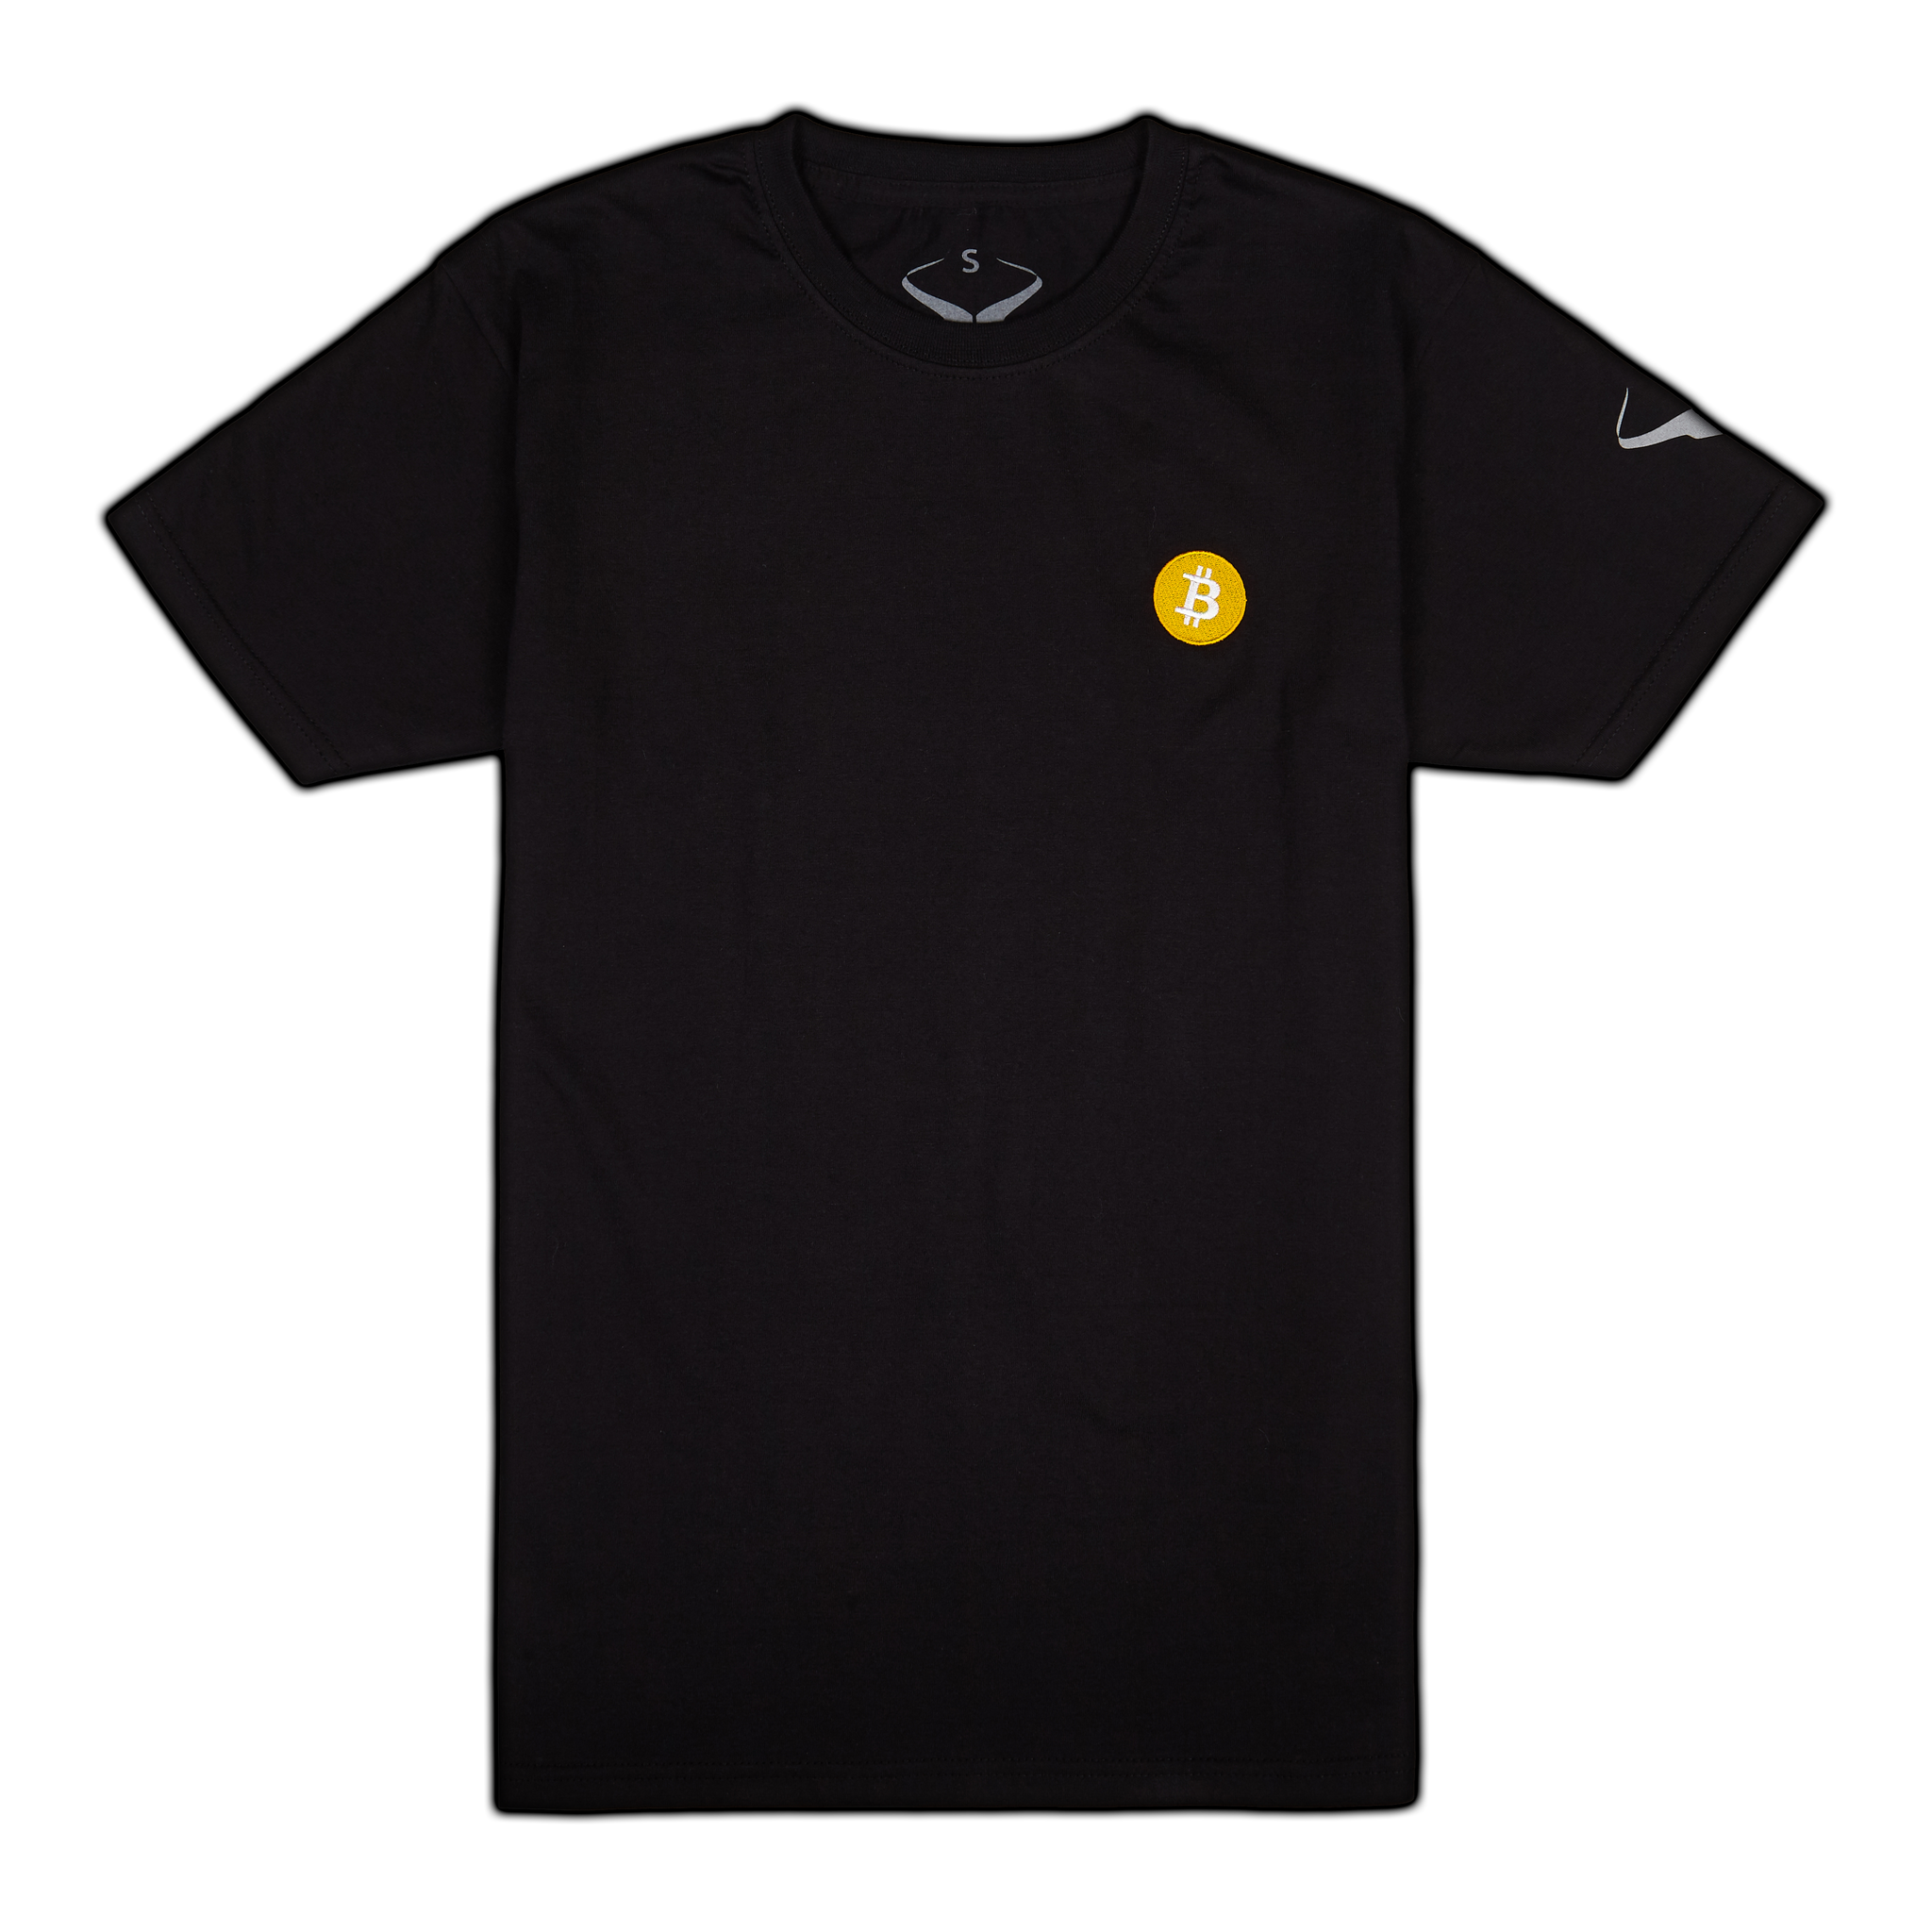 DIgital Gold BTC Embroidery Tee